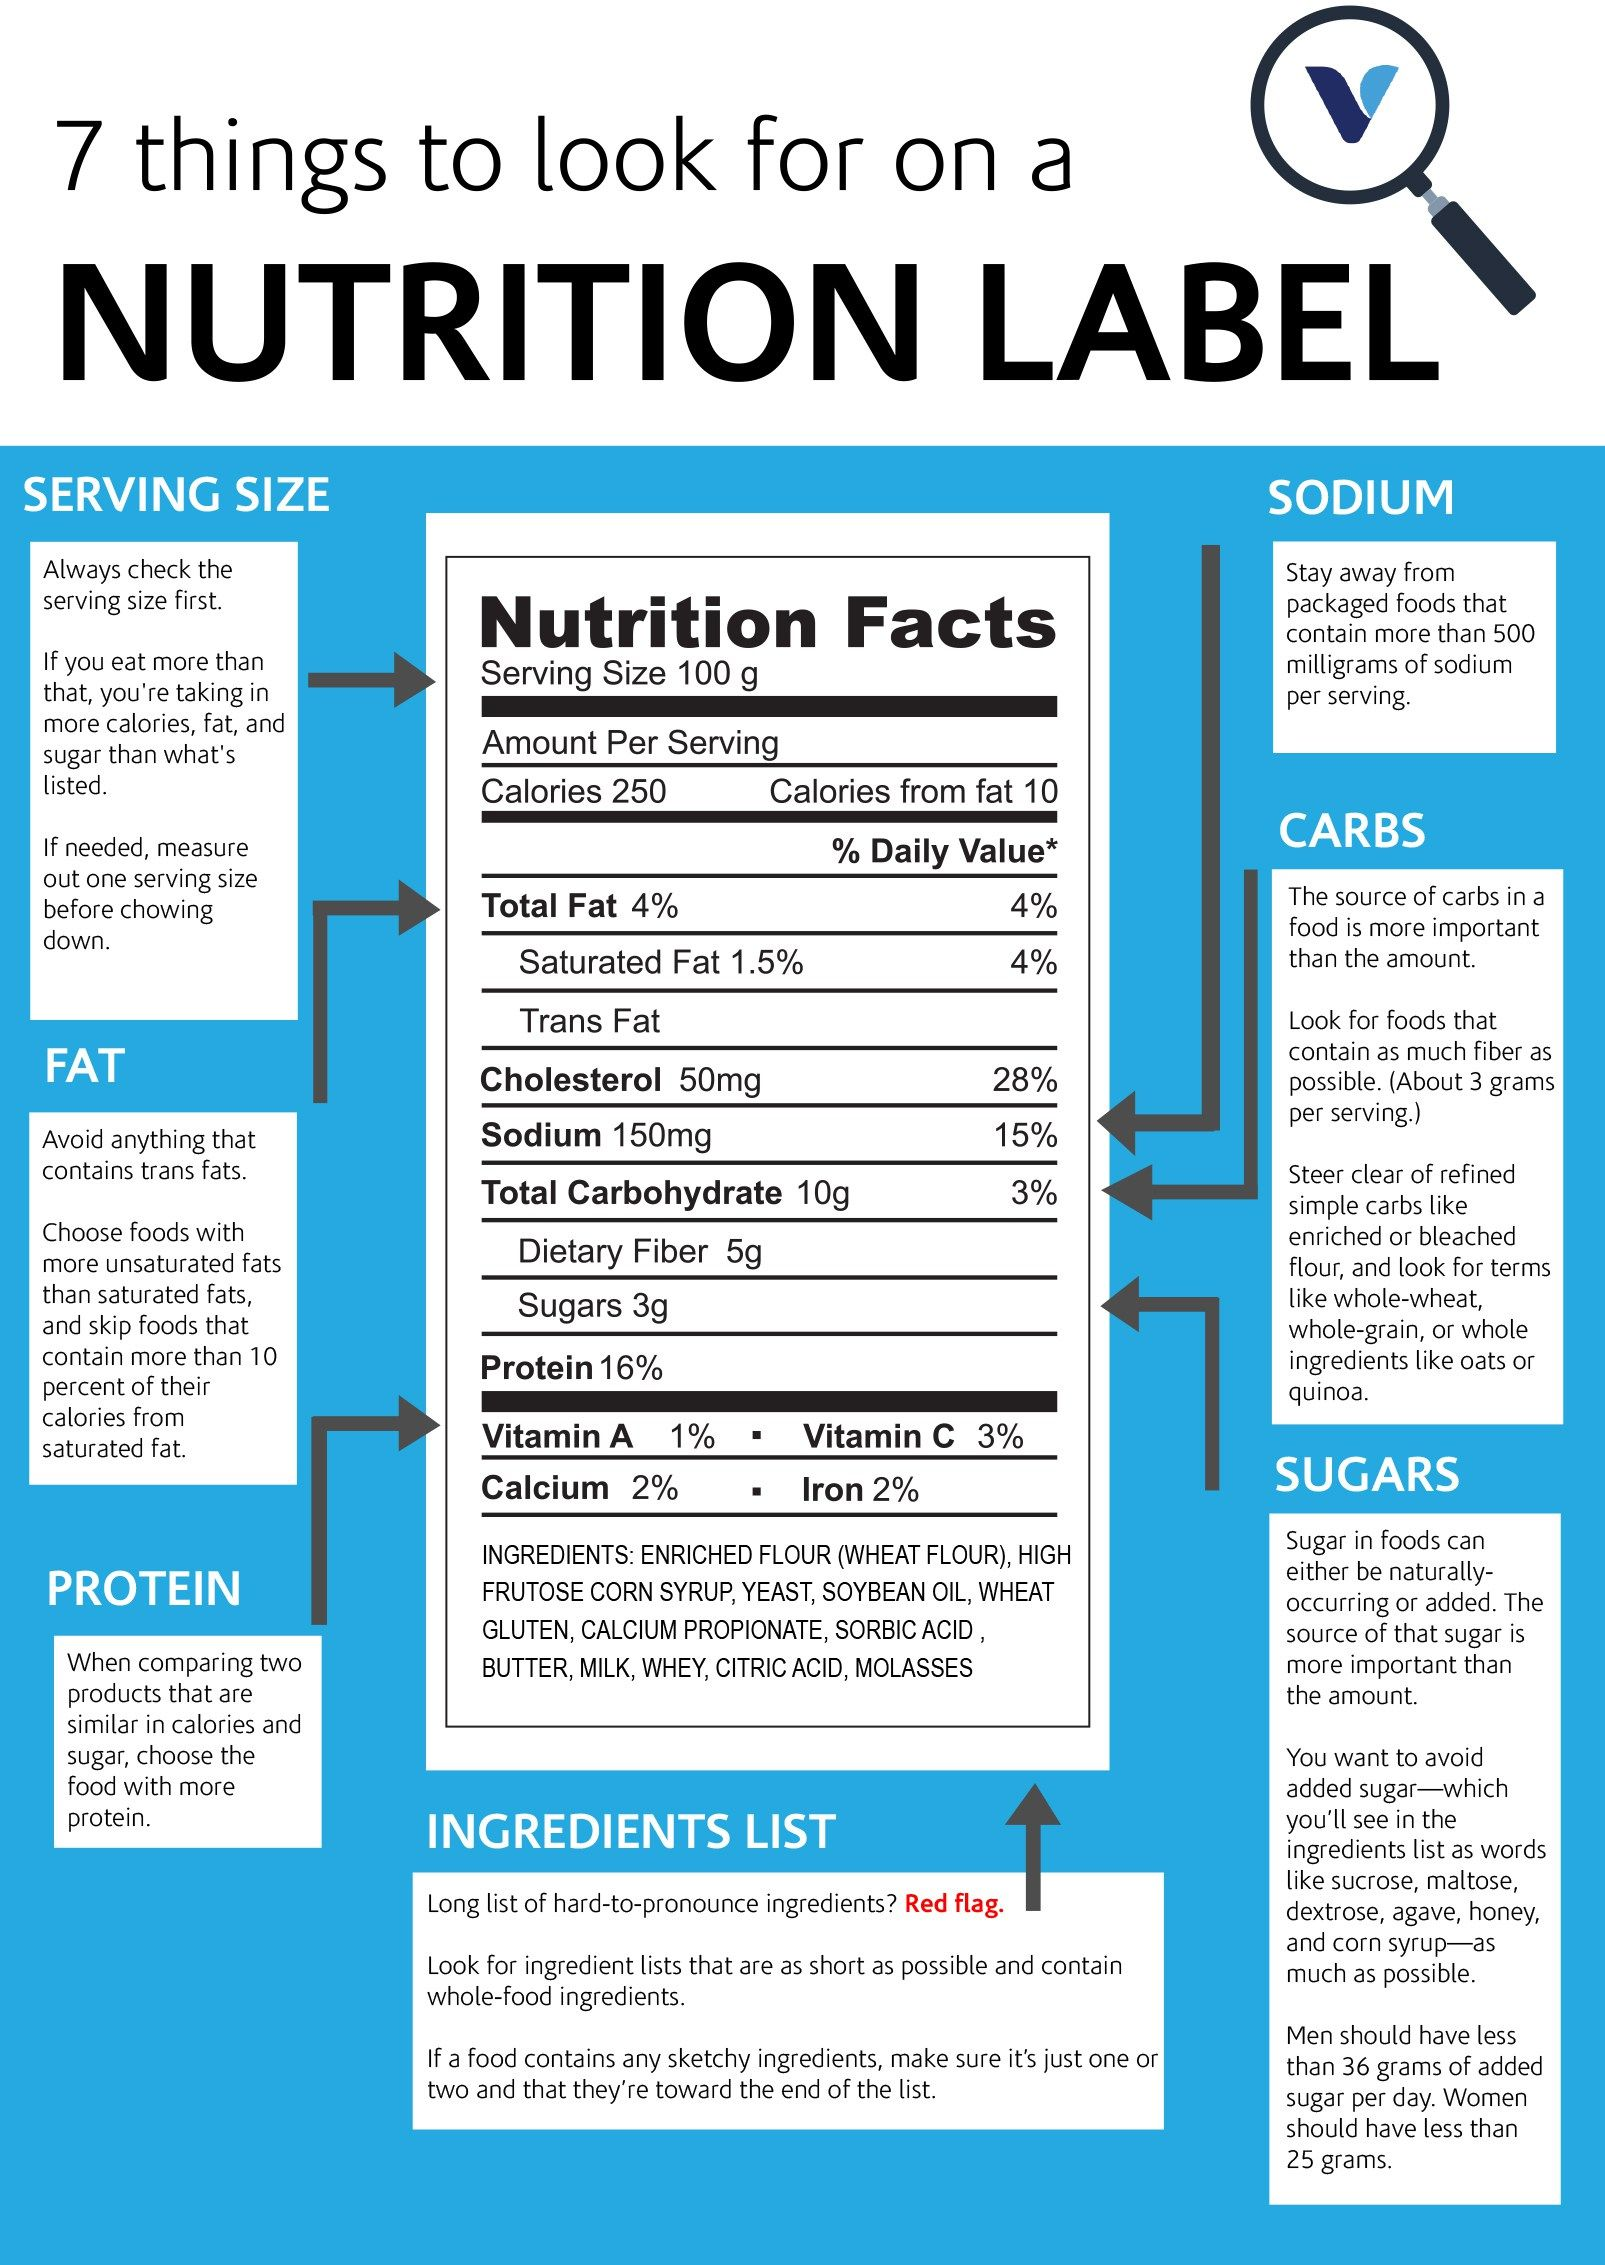 7 Things You Should Always Check On A Nutrition Label